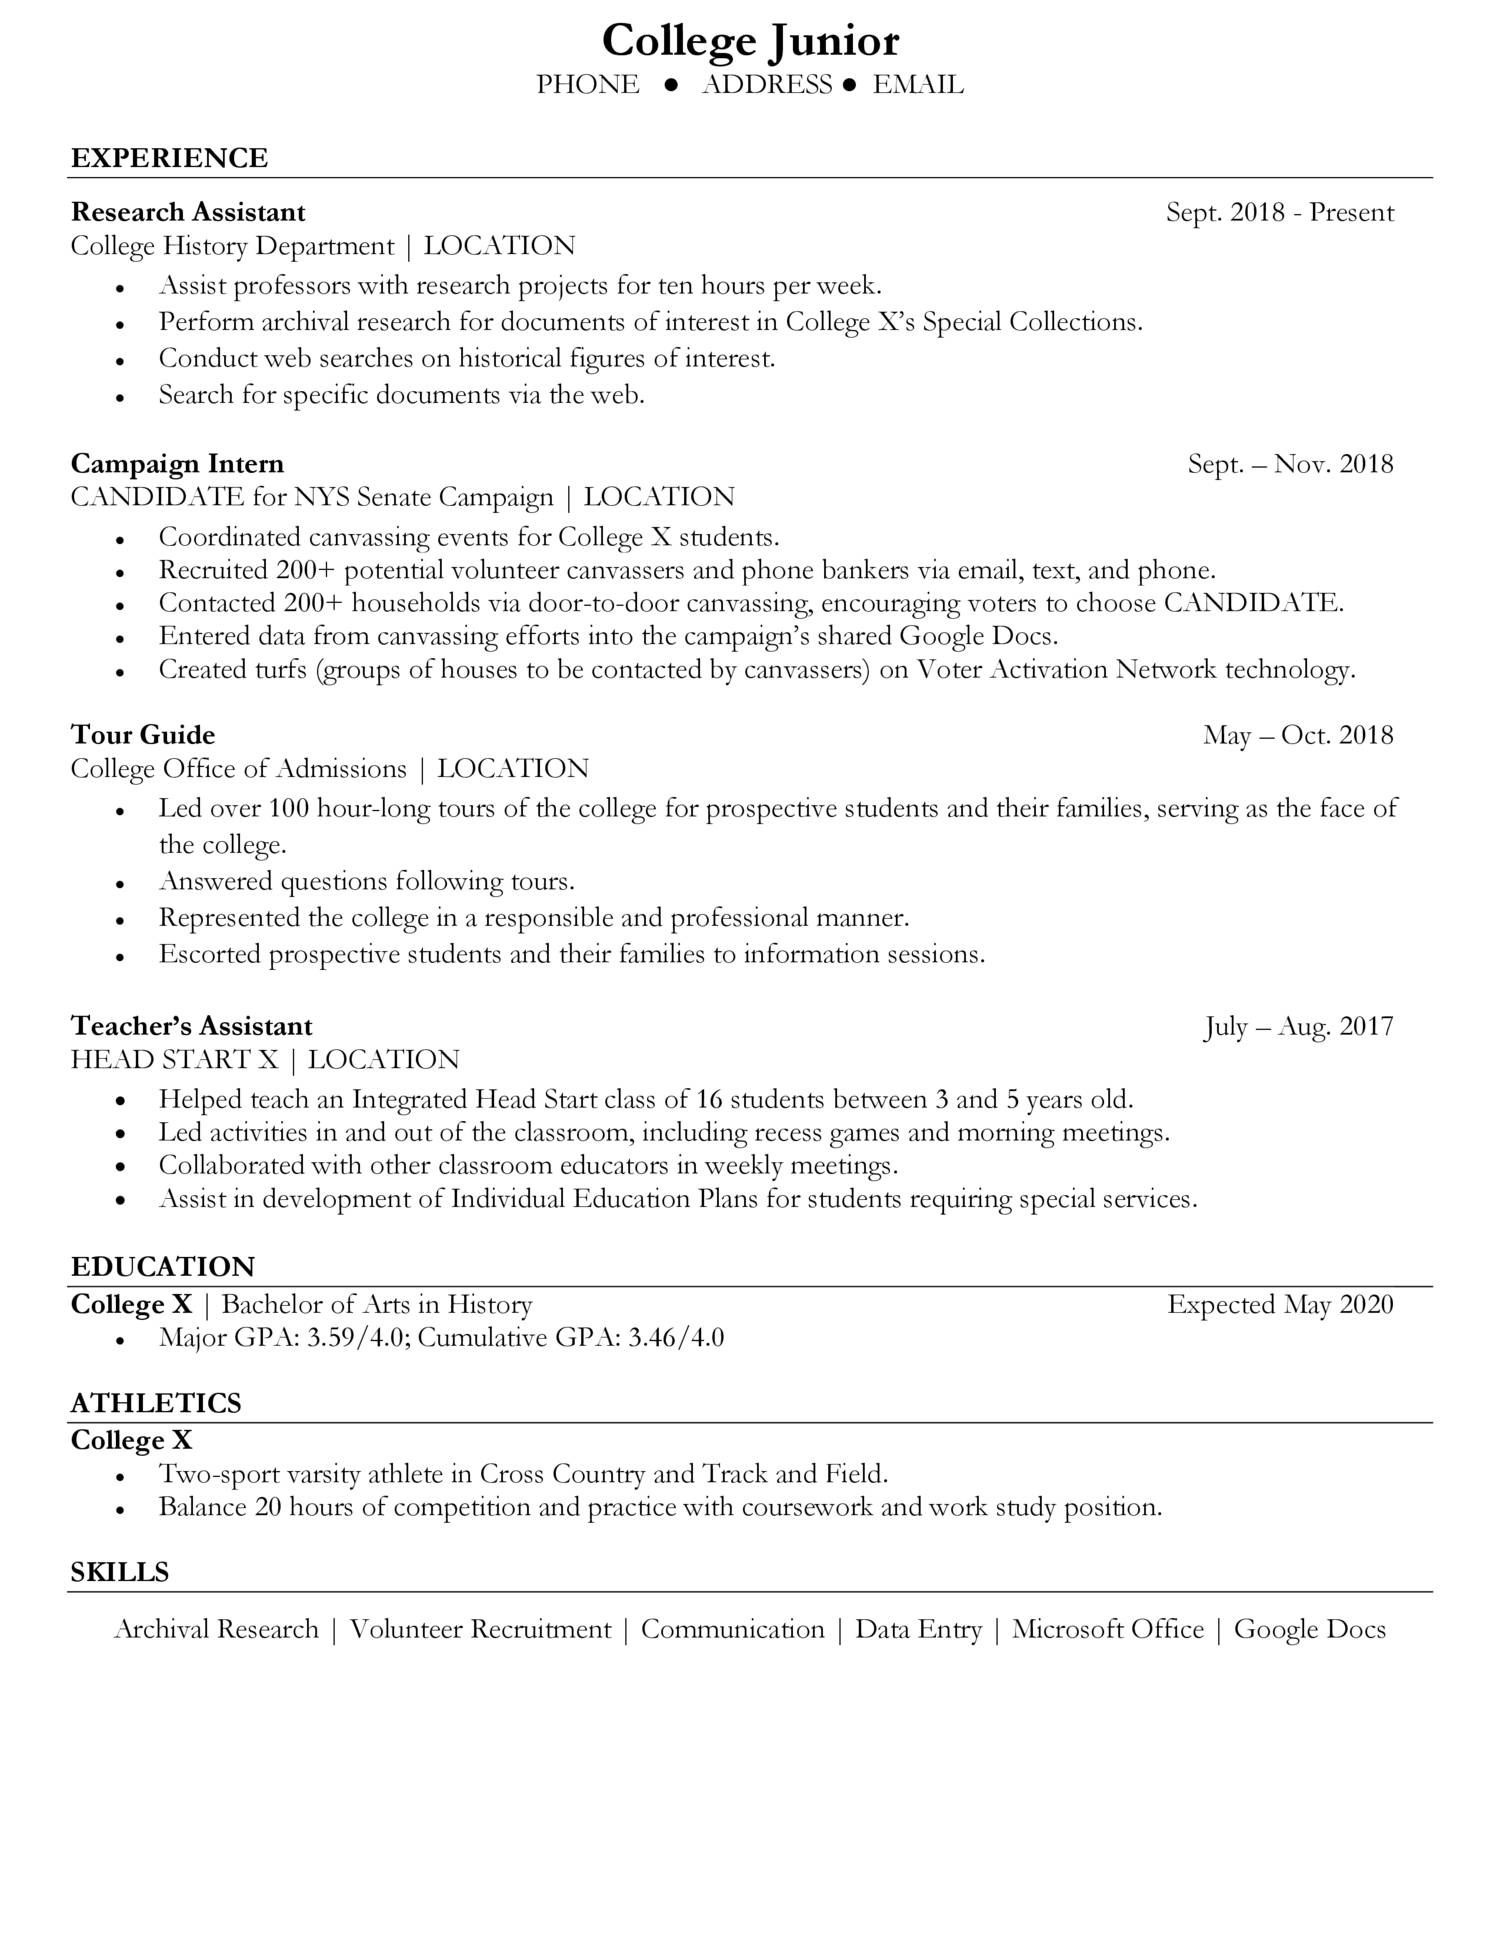 Resume 2019 for review-converted pdf | DocDroid